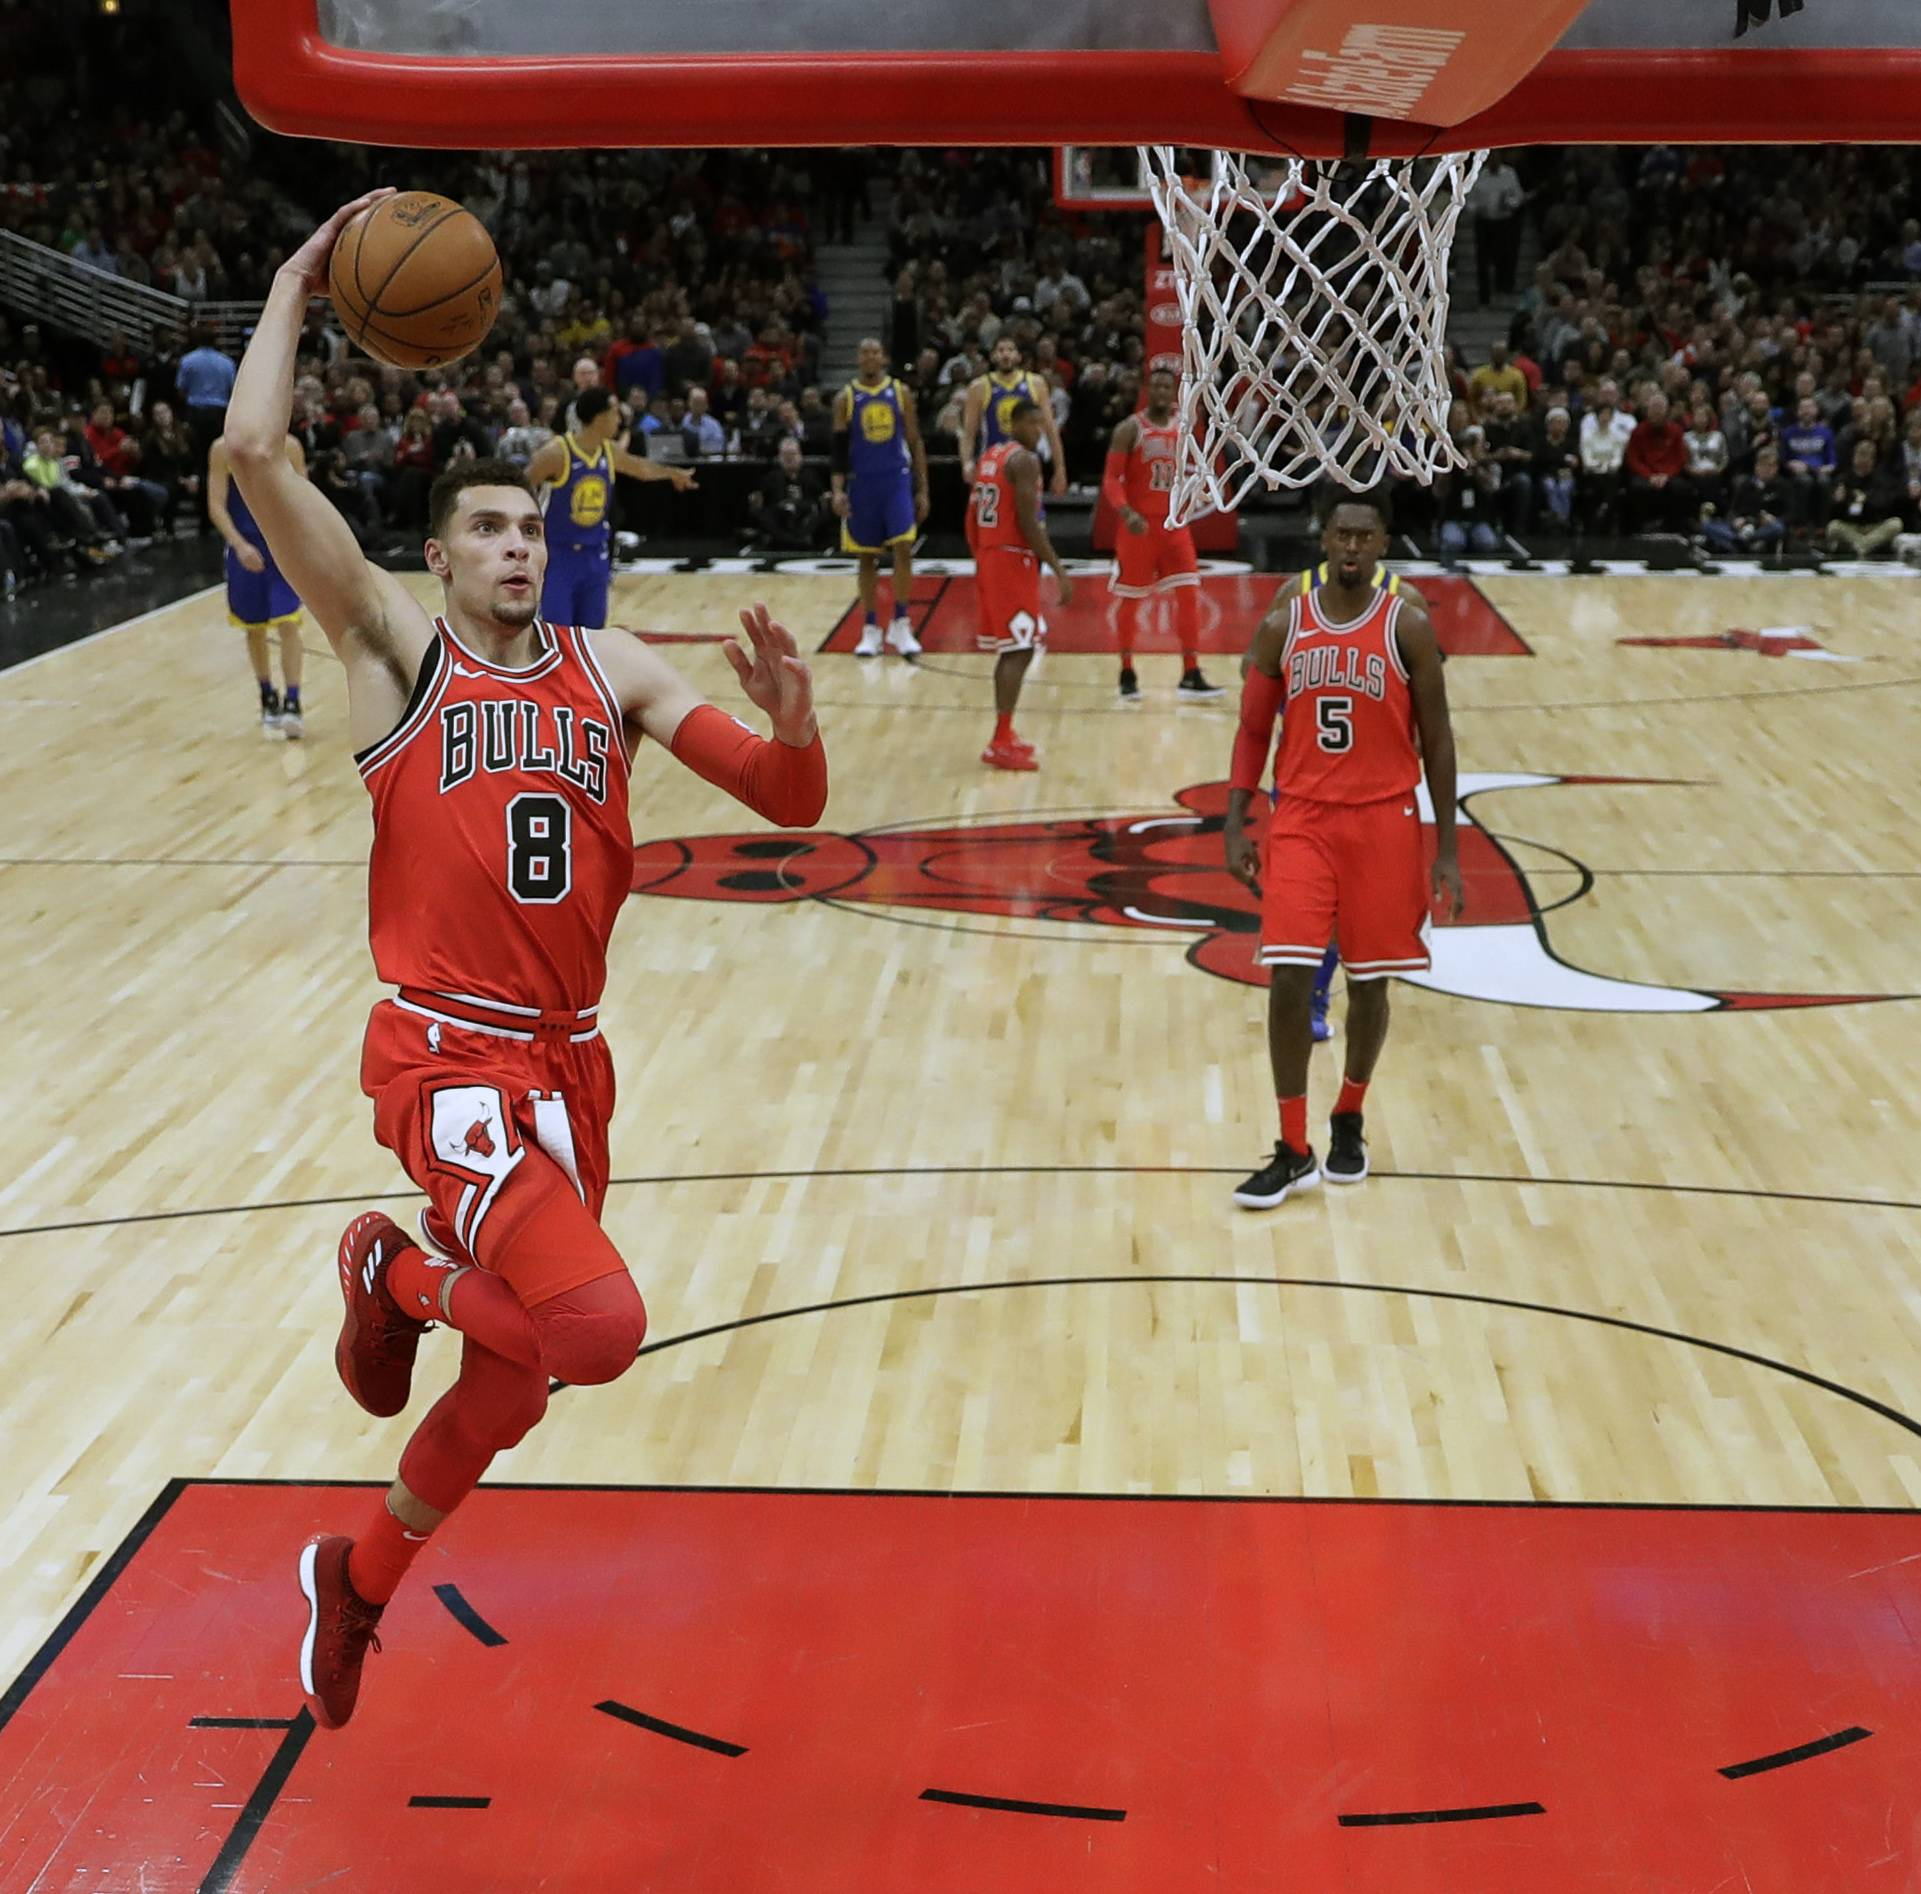 The Chicago Bulls' Zach LaVine goes up for a breakaway dunk during the first half against the Golden State Warriors. Bulls radio broadcasts could move to WSCR 670-AM, Robert Feder writes.